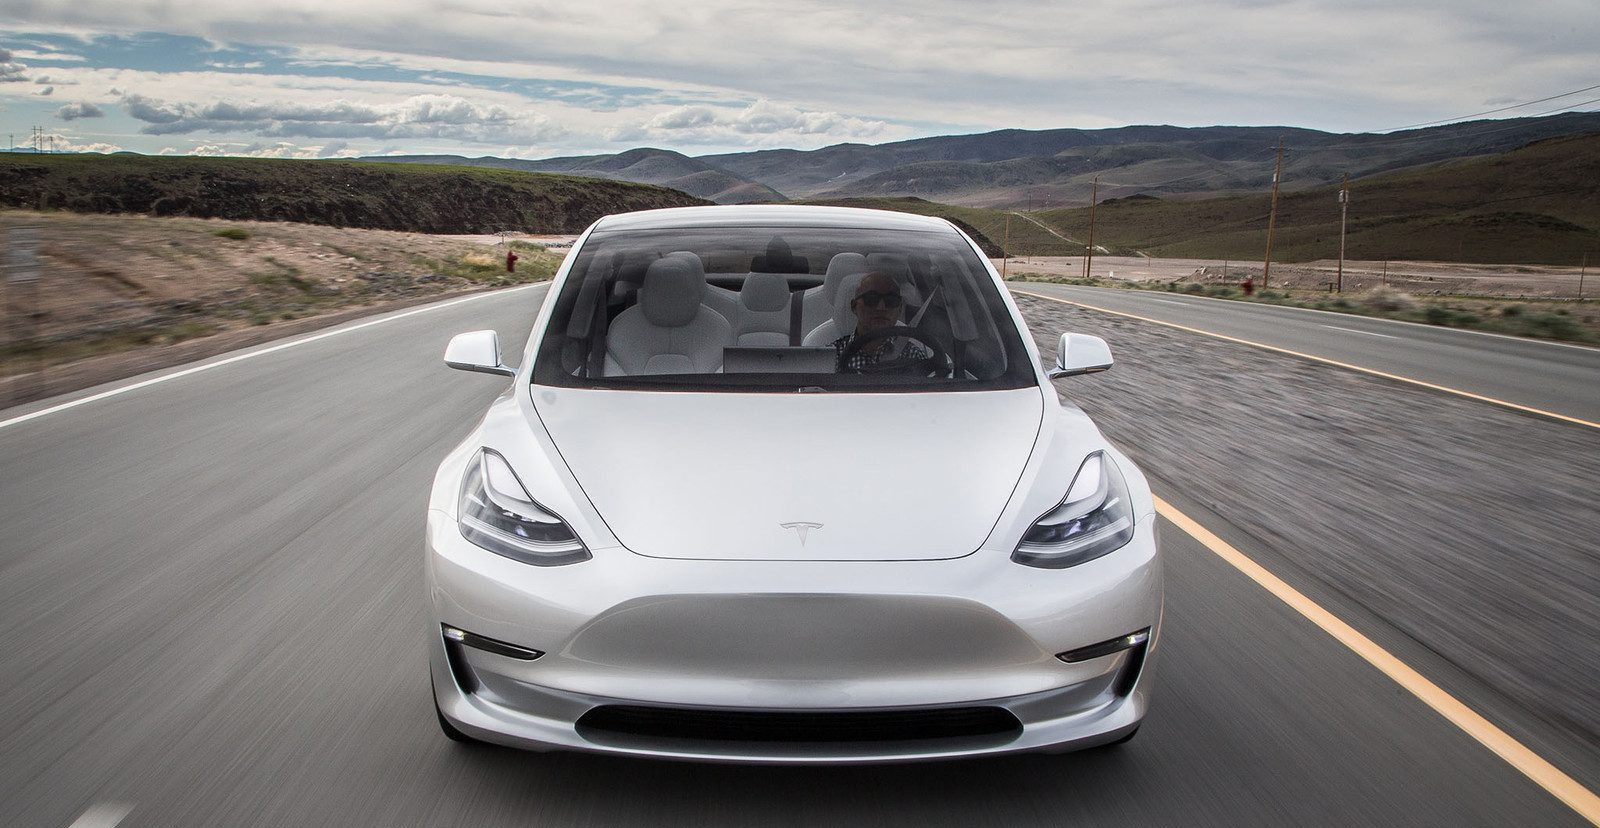 Fans Made A Few Renderings With The Refreshed Model S Fascia To Help Envision What It Could Look Like Here One By Invertednormal Based On Picture From